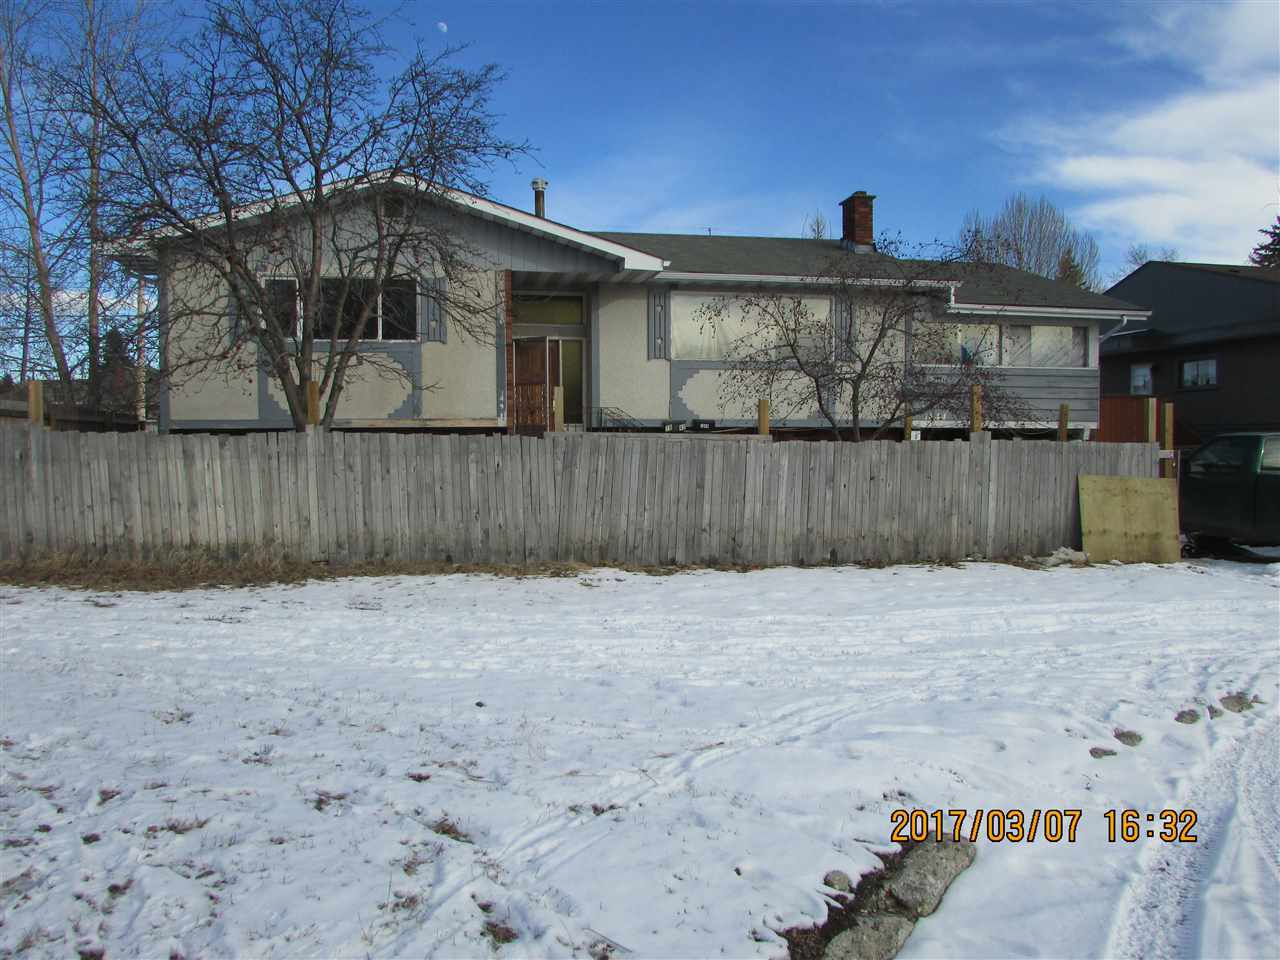 Main Photo: 1840 VINE Street in Prince George: Van Bow House for sale (PG City Central (Zone 72))  : MLS®# R2144880